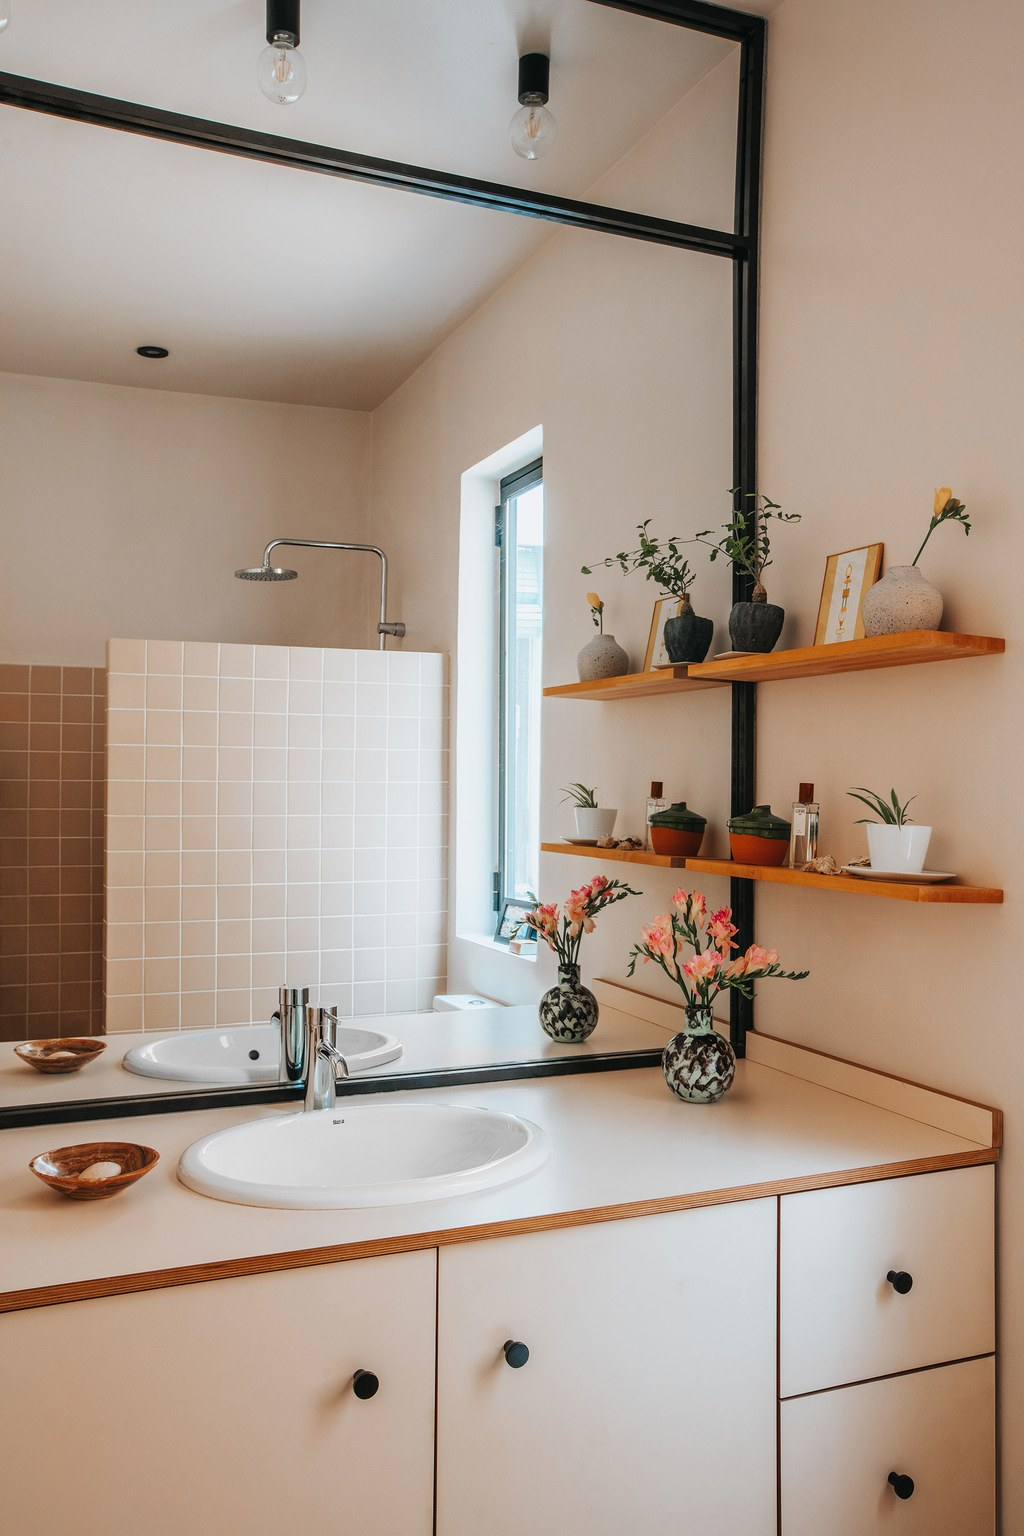 the_nordroom_a_barcelona_apartment_with_a_coral_pink_kitchen_9.jpg